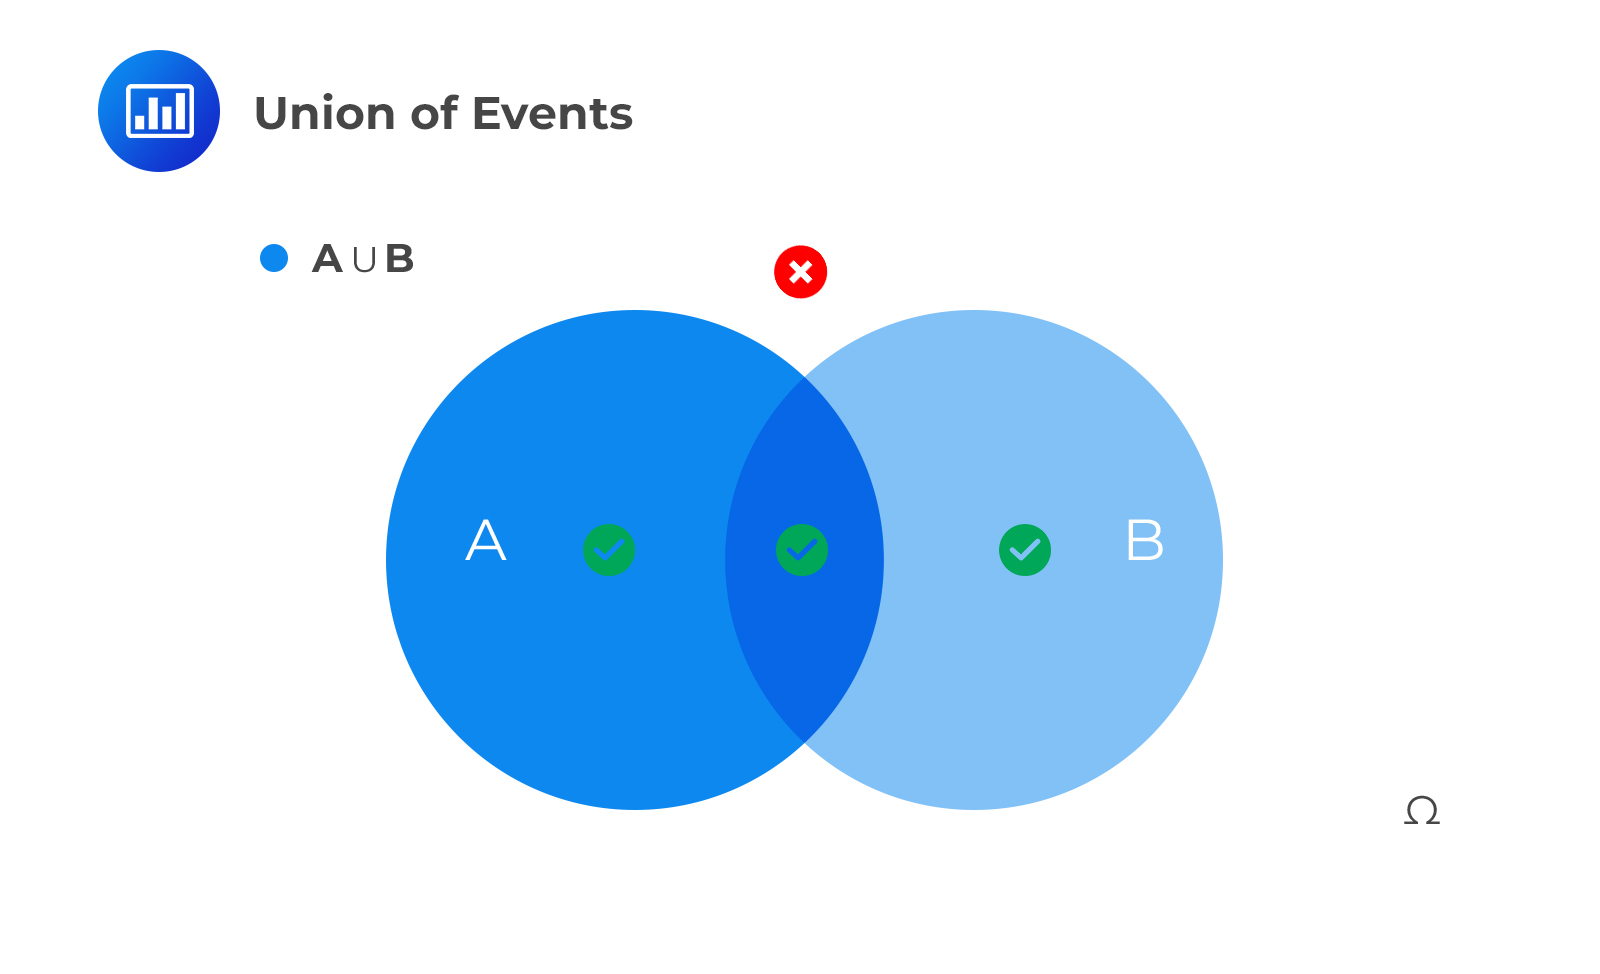 Union of Events